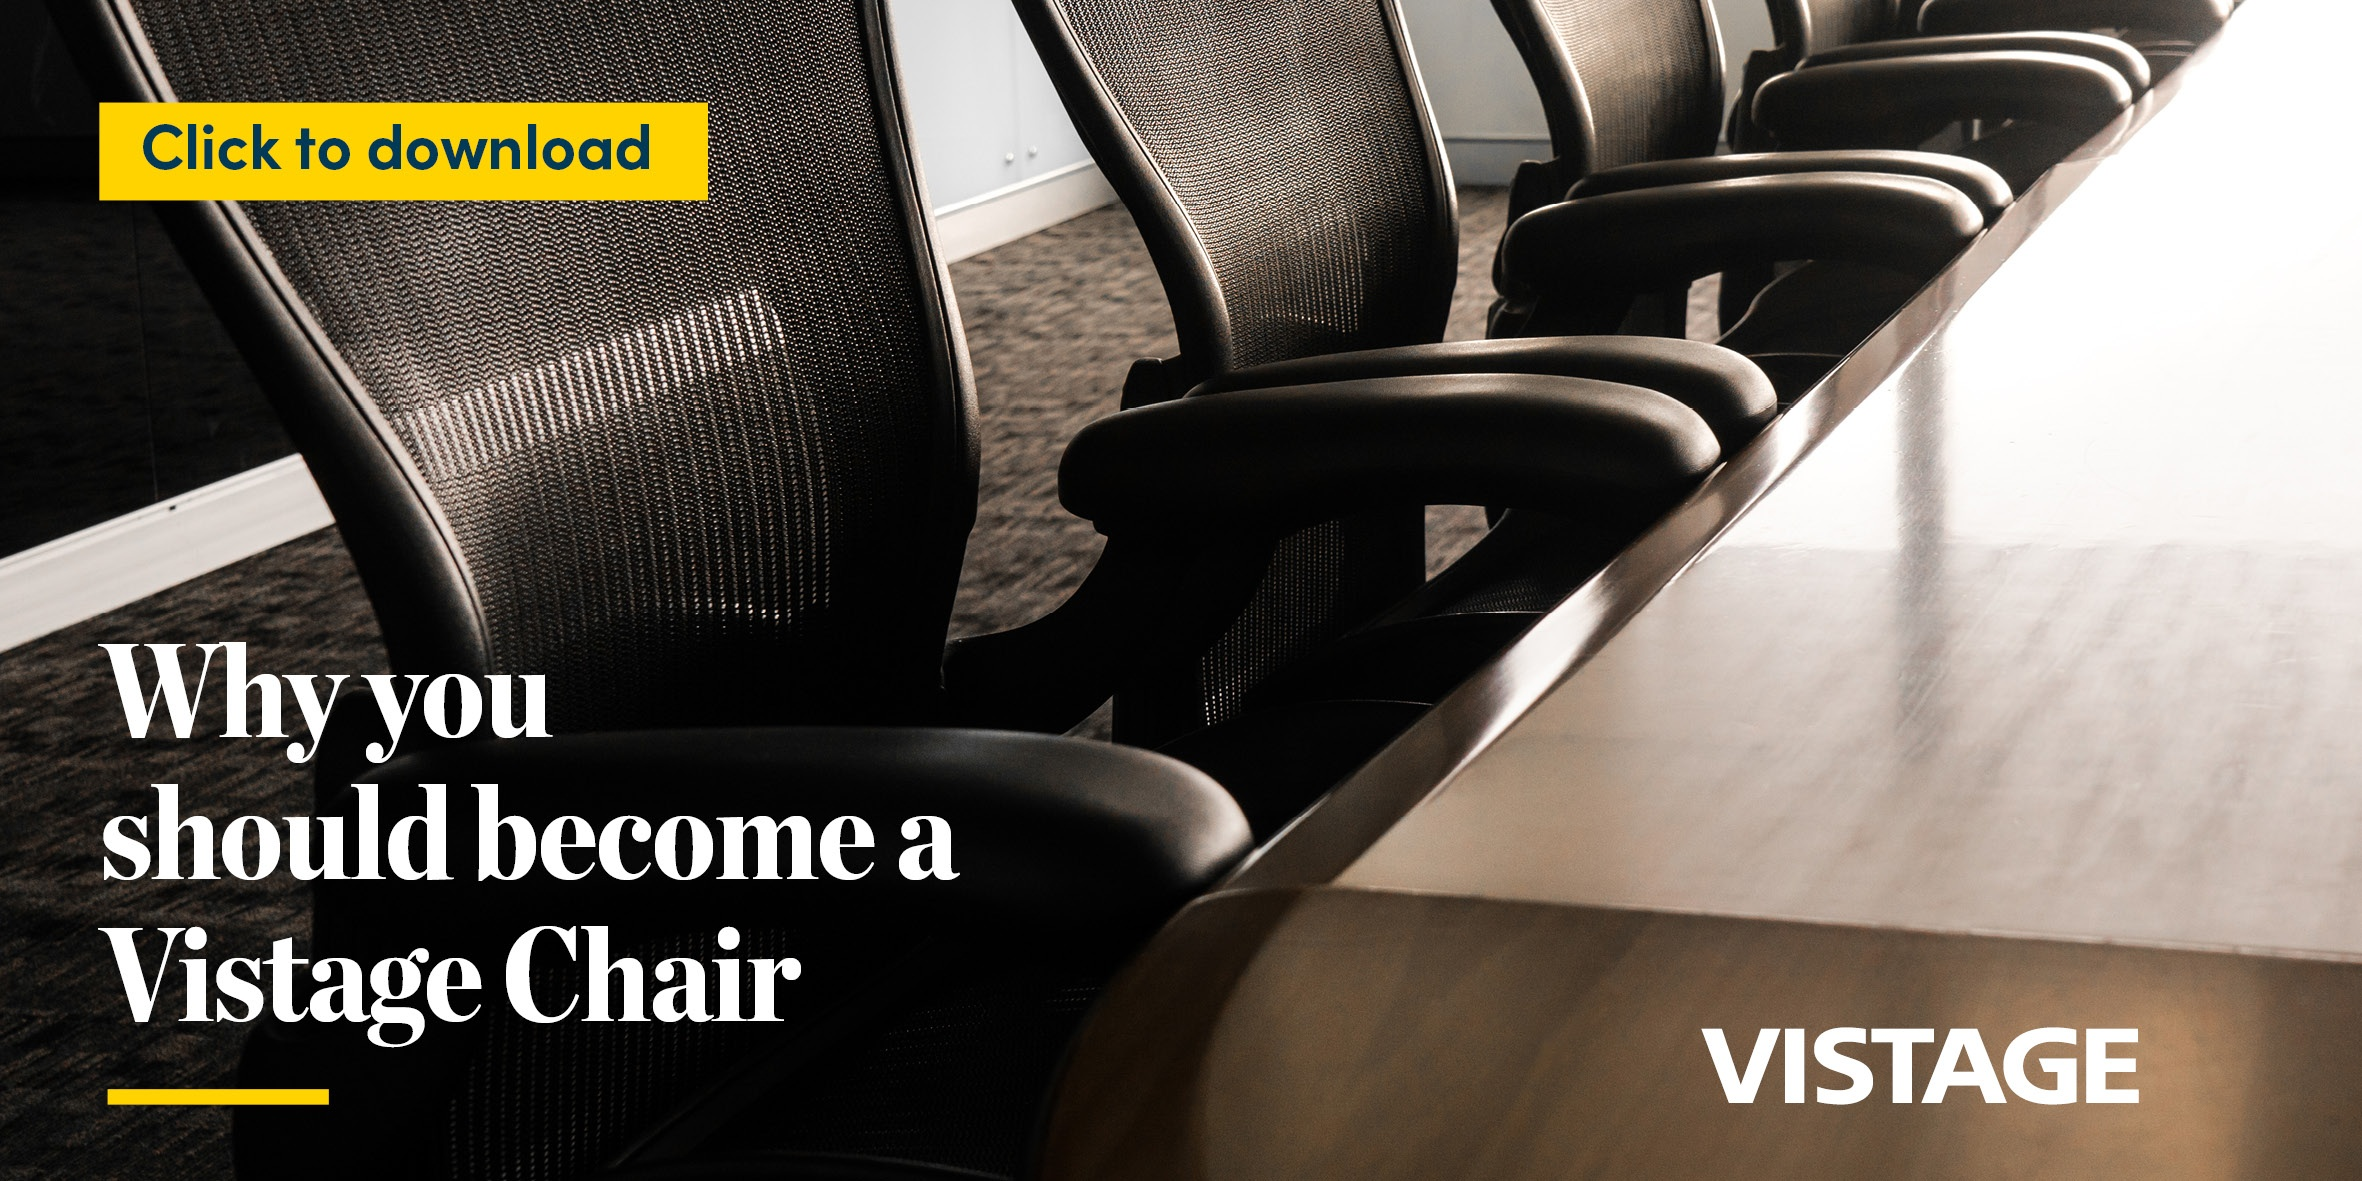 Why you should become a Vistage Chair